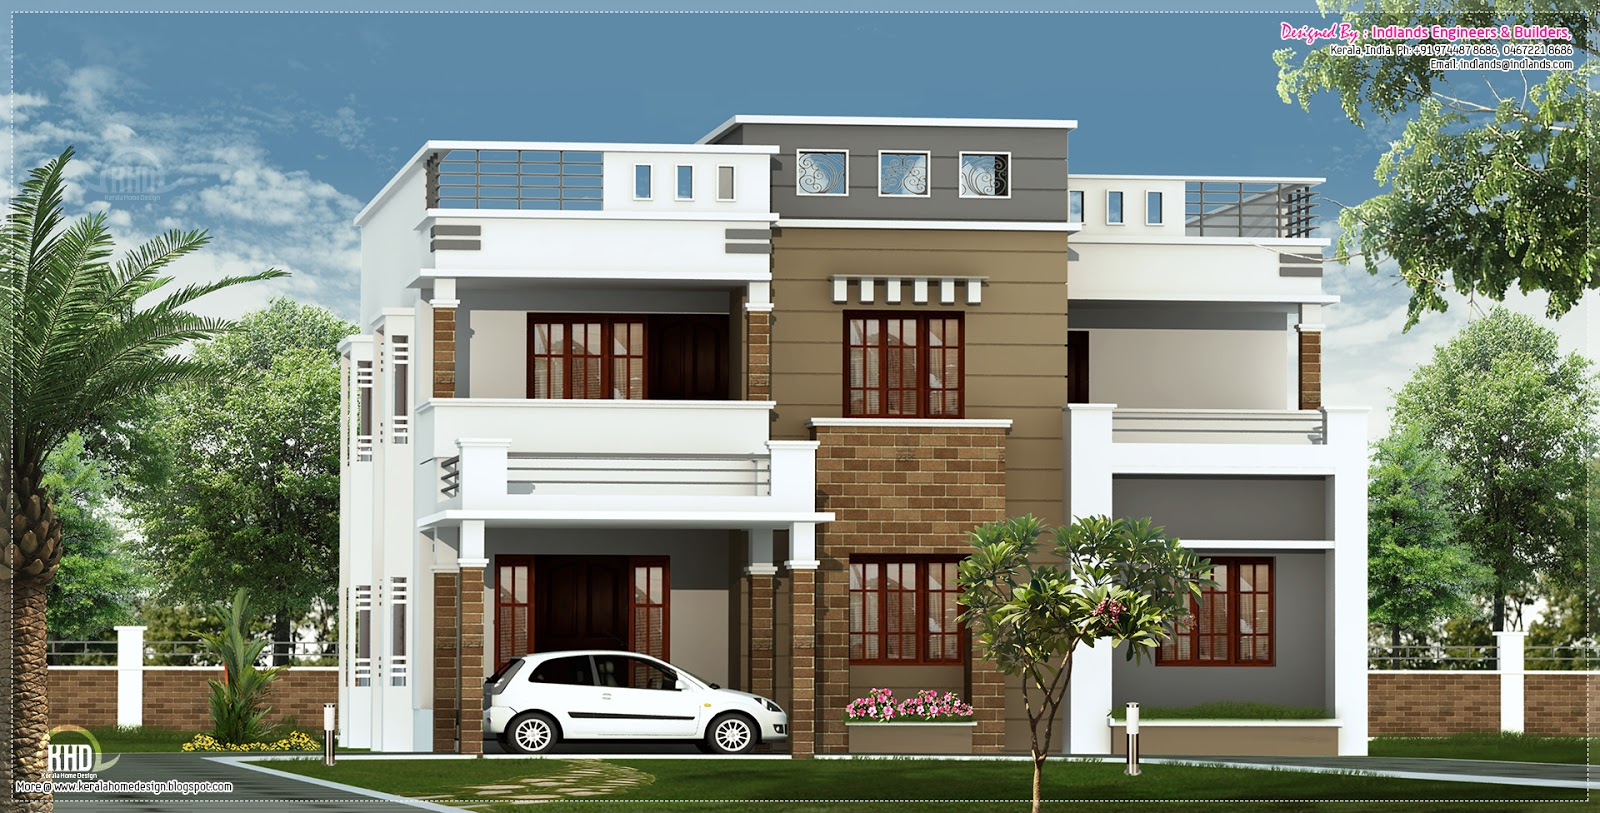 Sample Front Elevation Models : March kerala home design and floor plans